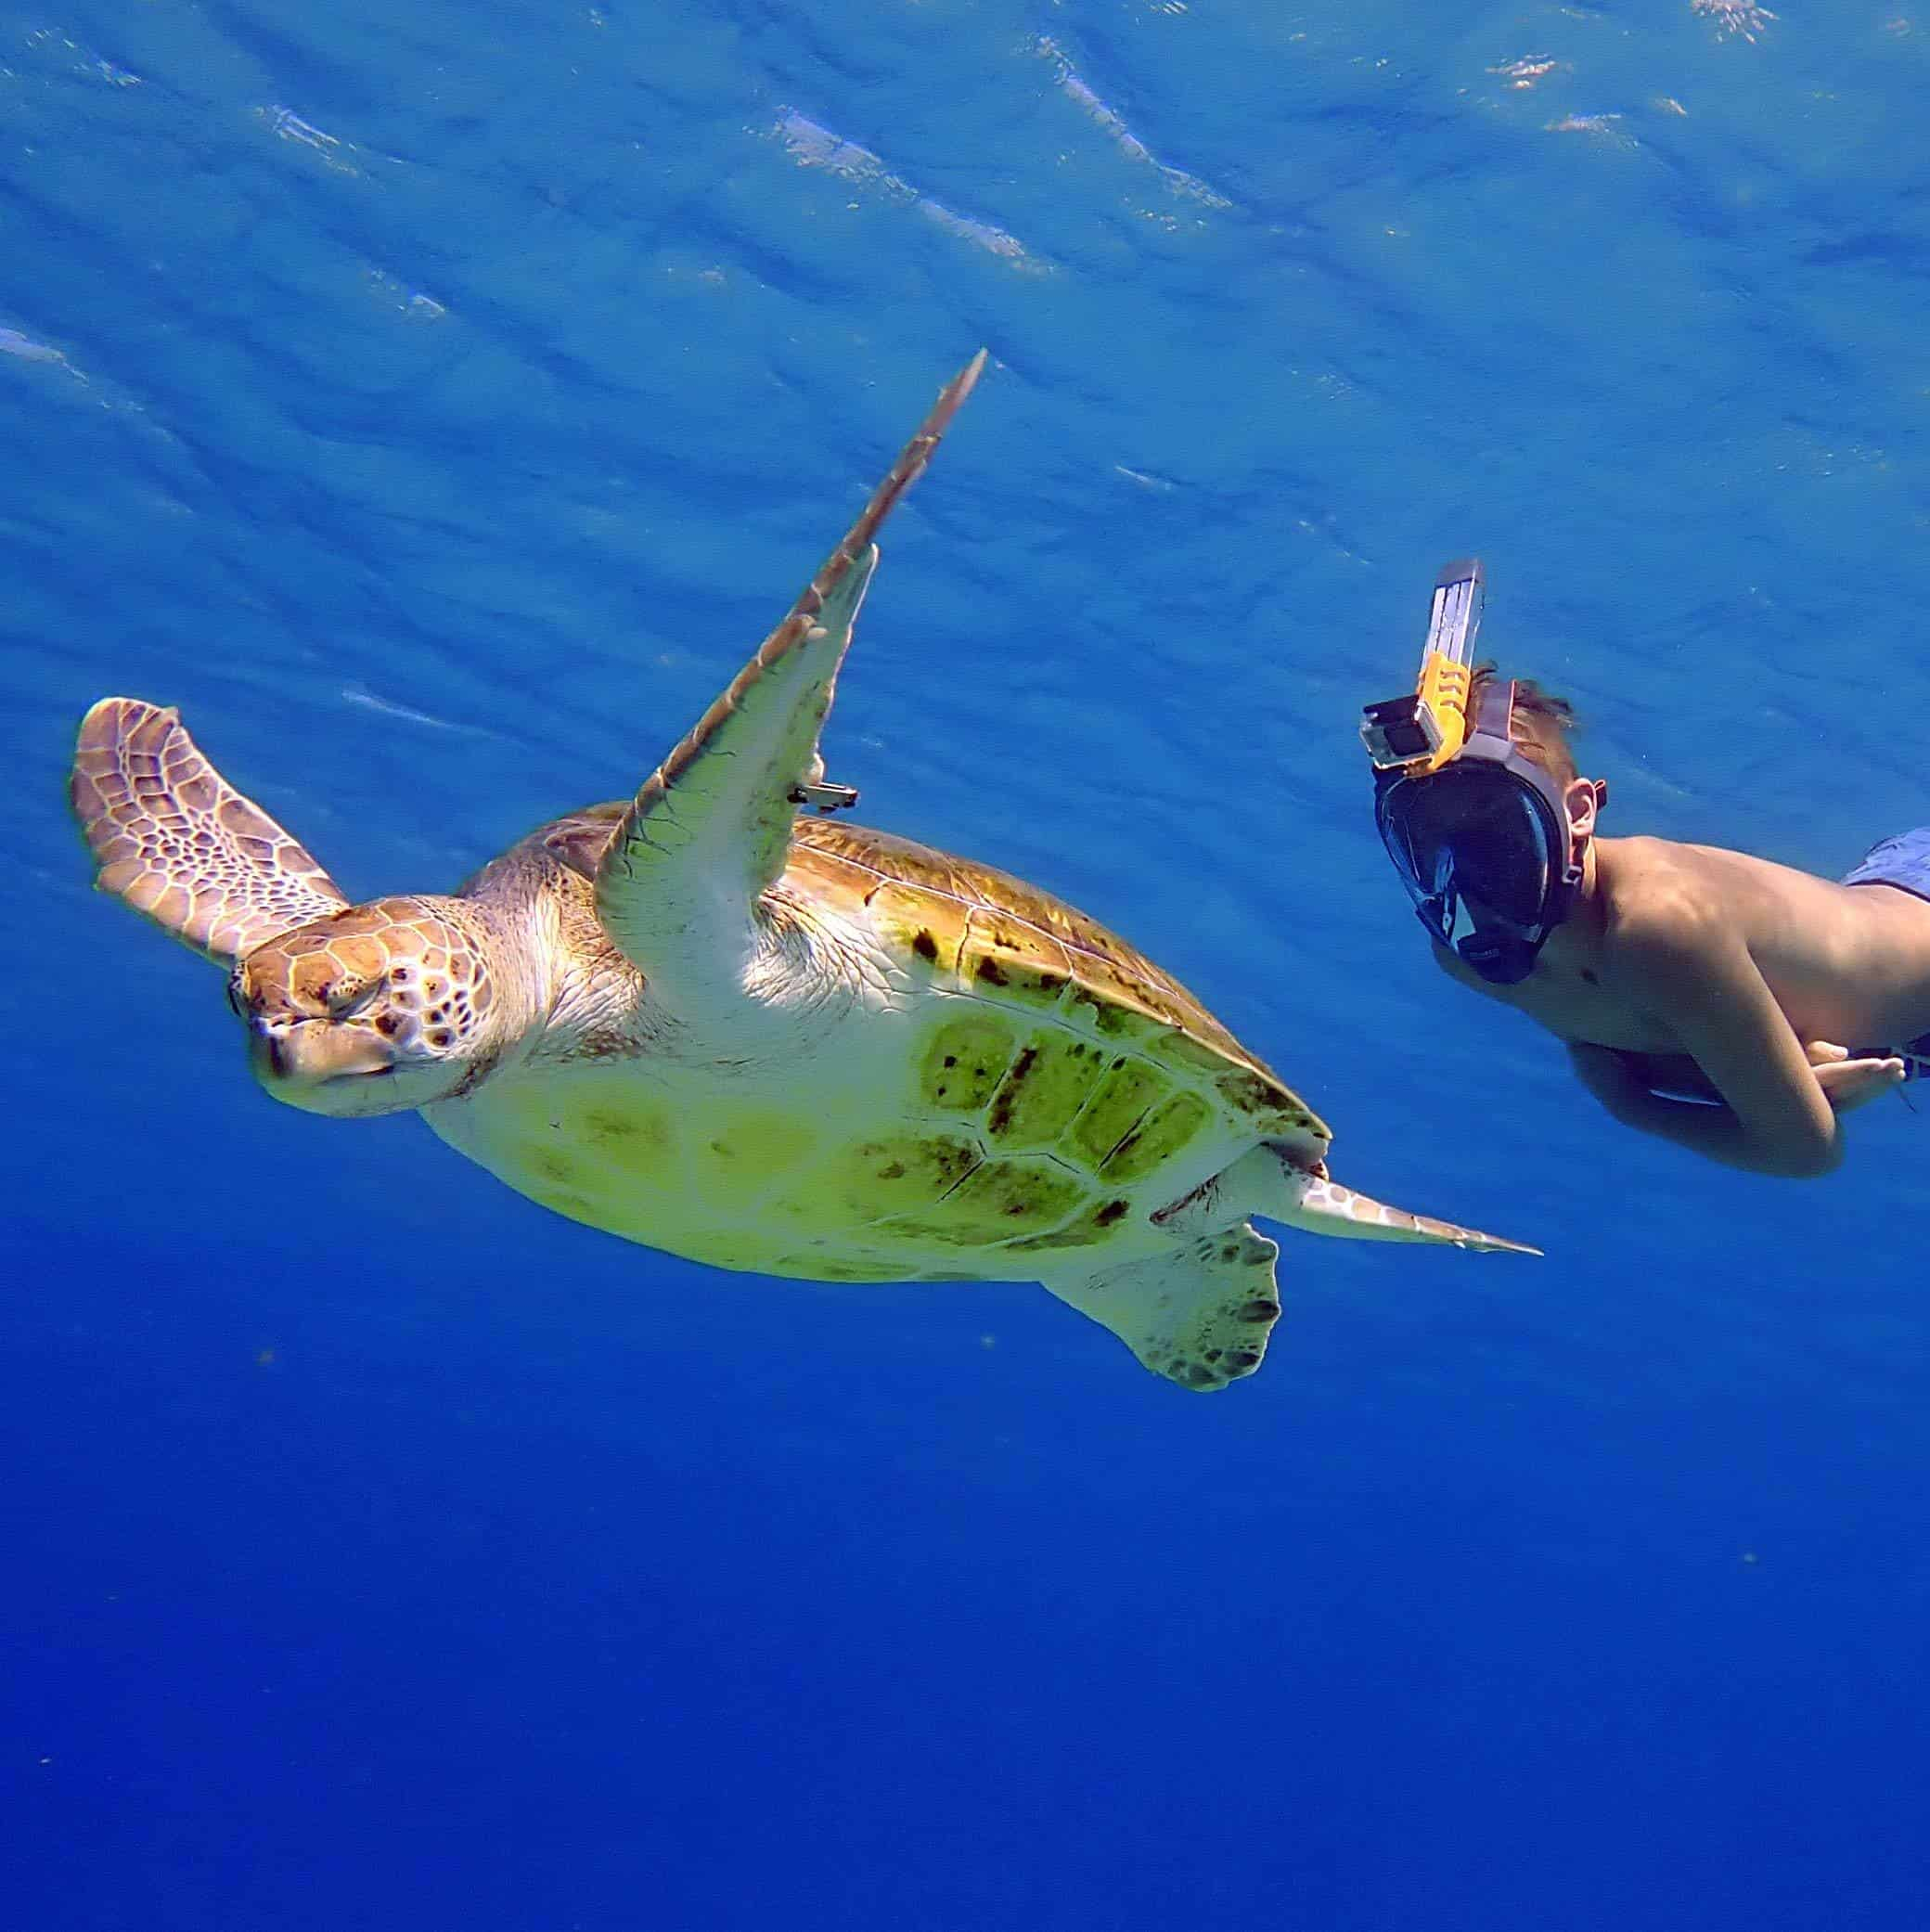 Ocean Reef Group - Aria Antracite (Black) with turtle